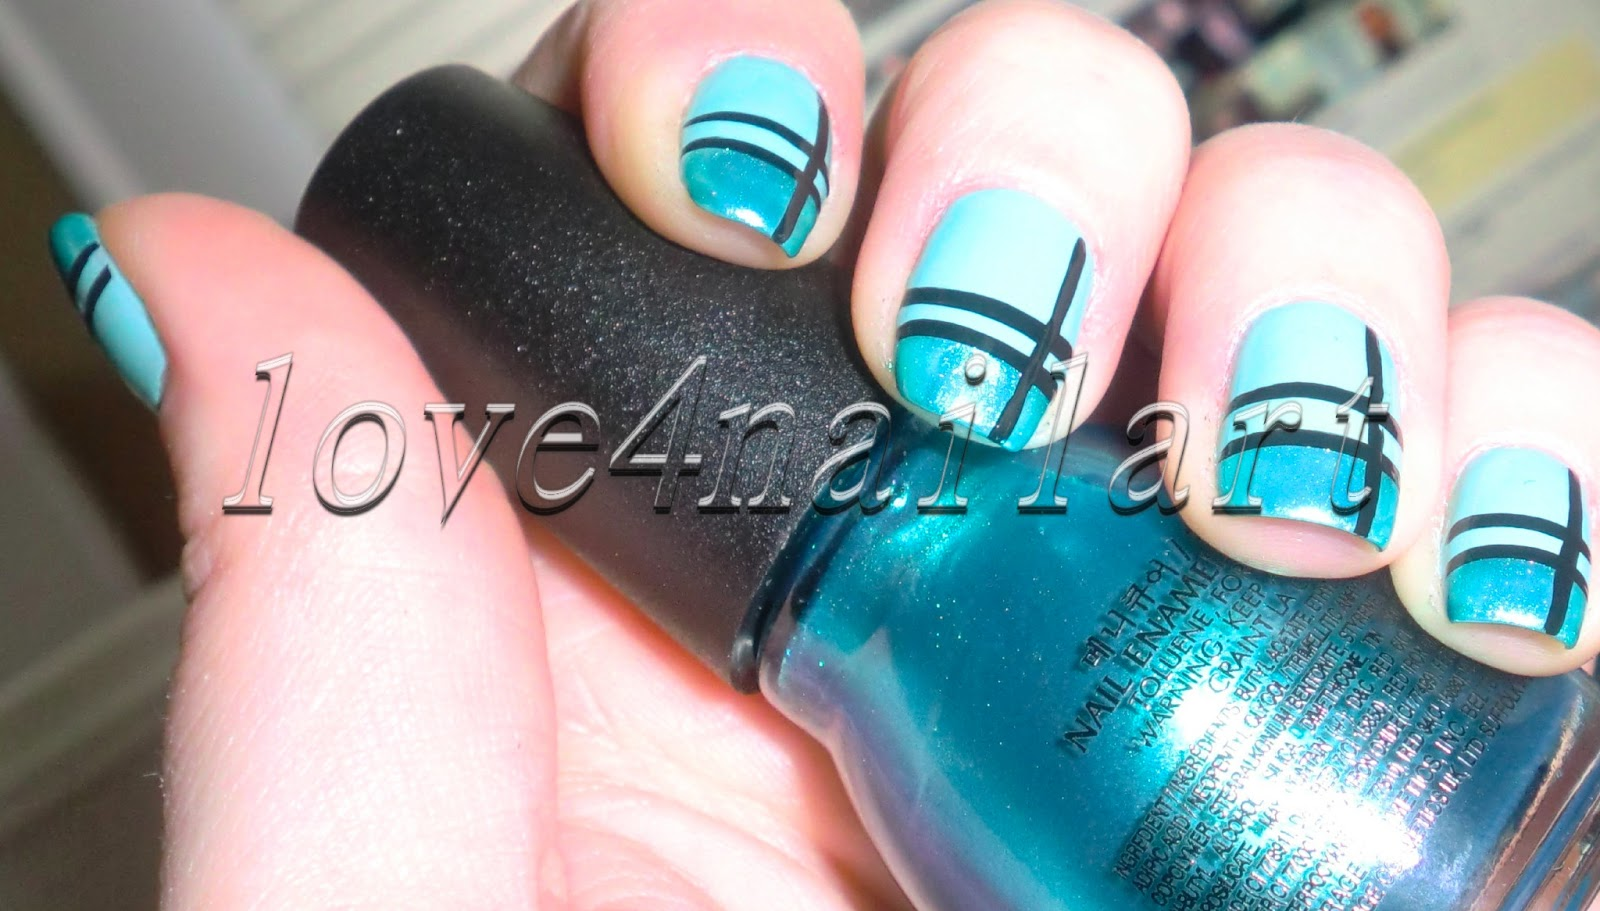 Striped Nail Art Designs 8 30 Unique Striped Nail Art Designs 2015 30 Unique Striped Nail Art Designs 2015 Striped Nail Art Designs 81